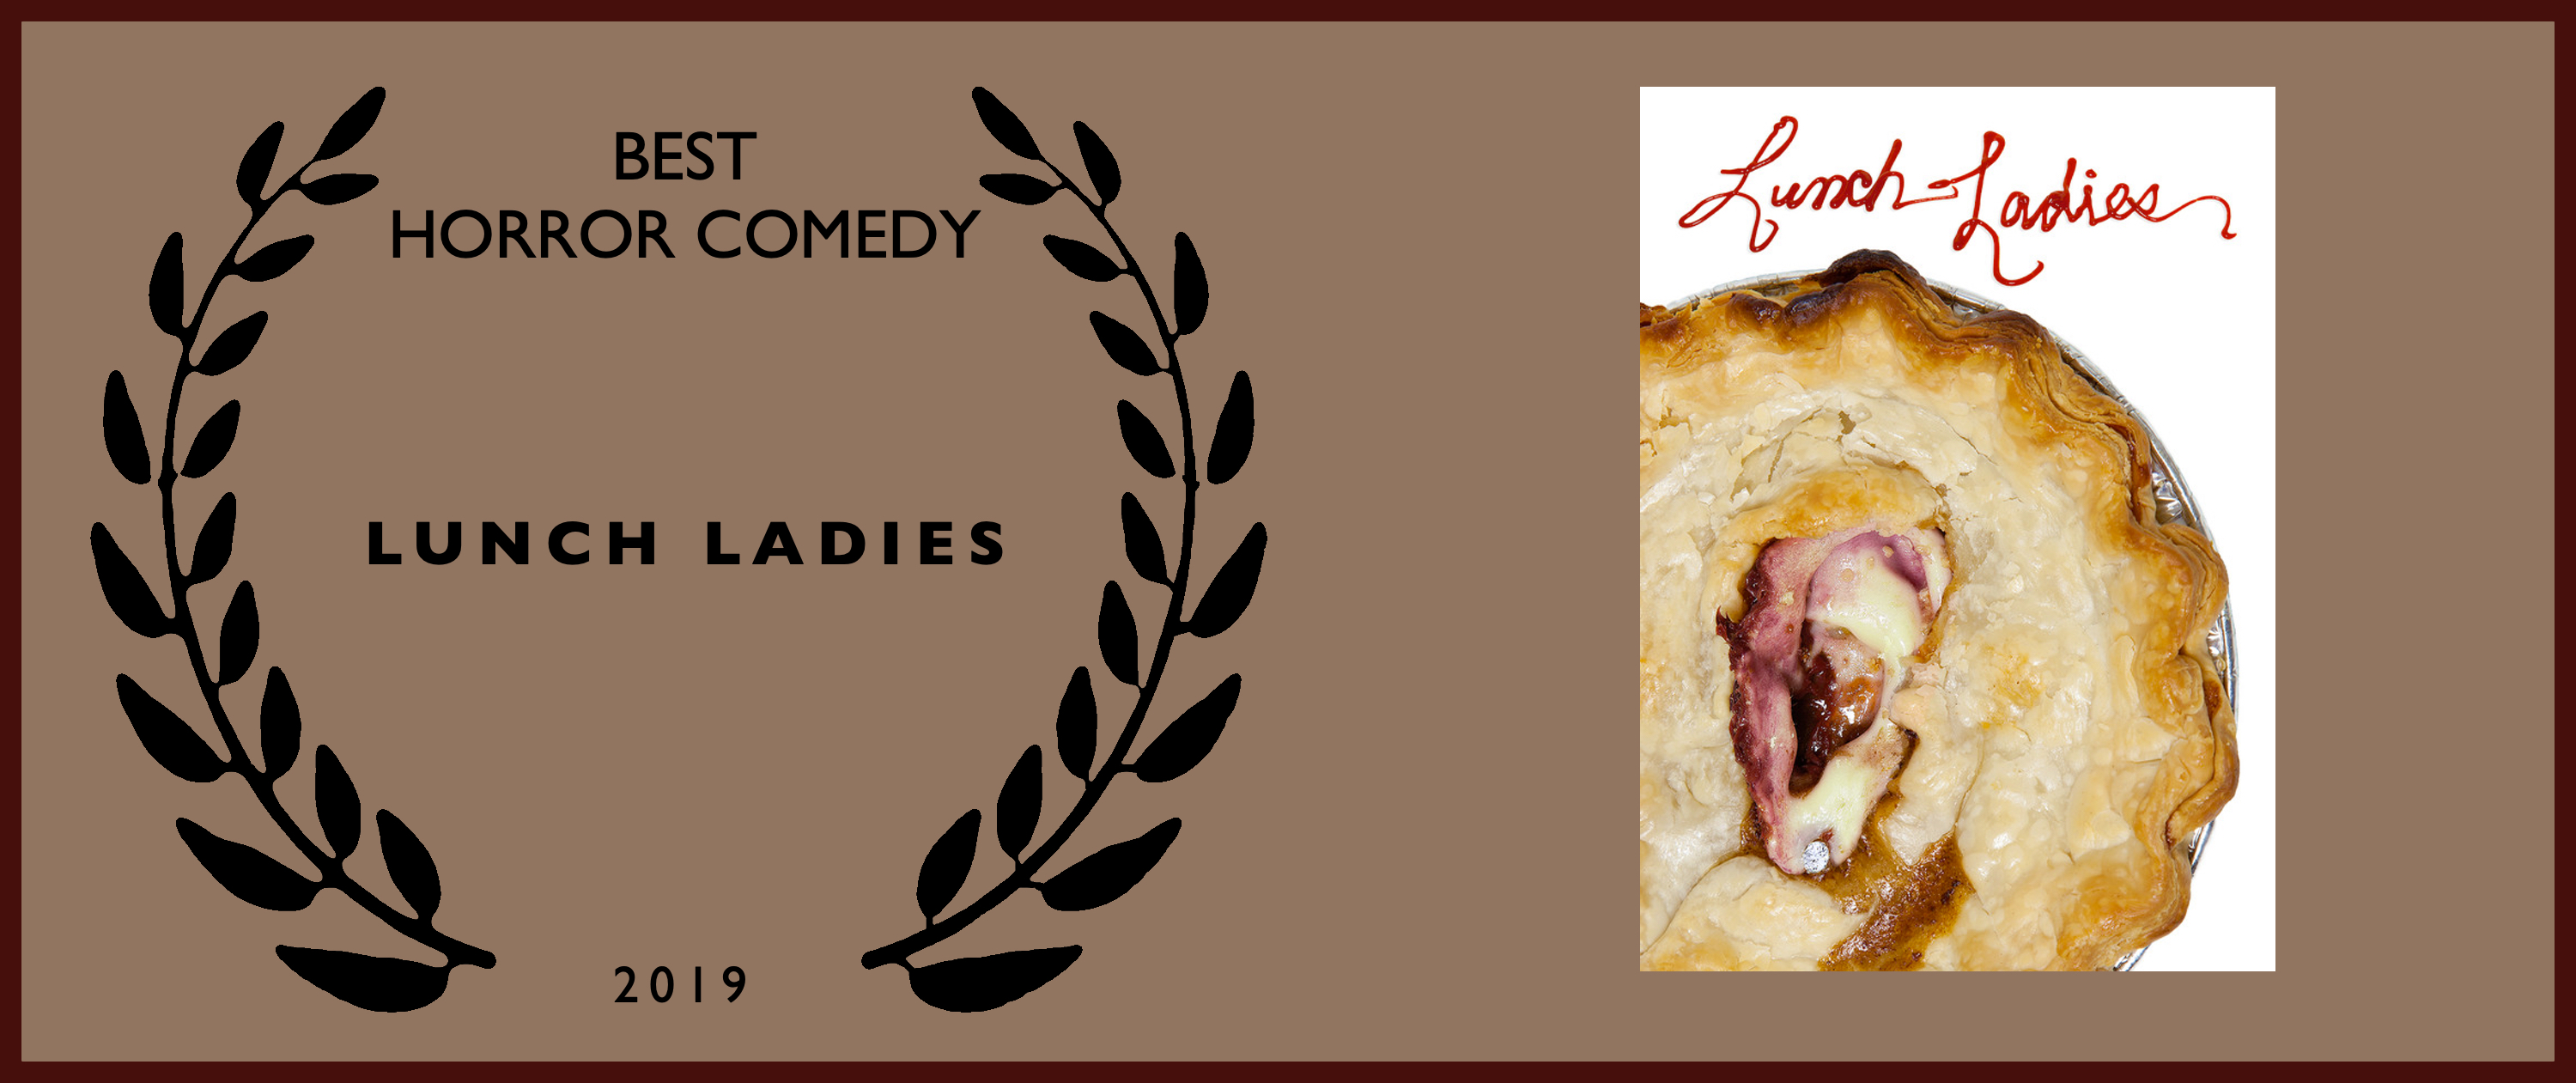 https://www.lunchladiesmovie.com/